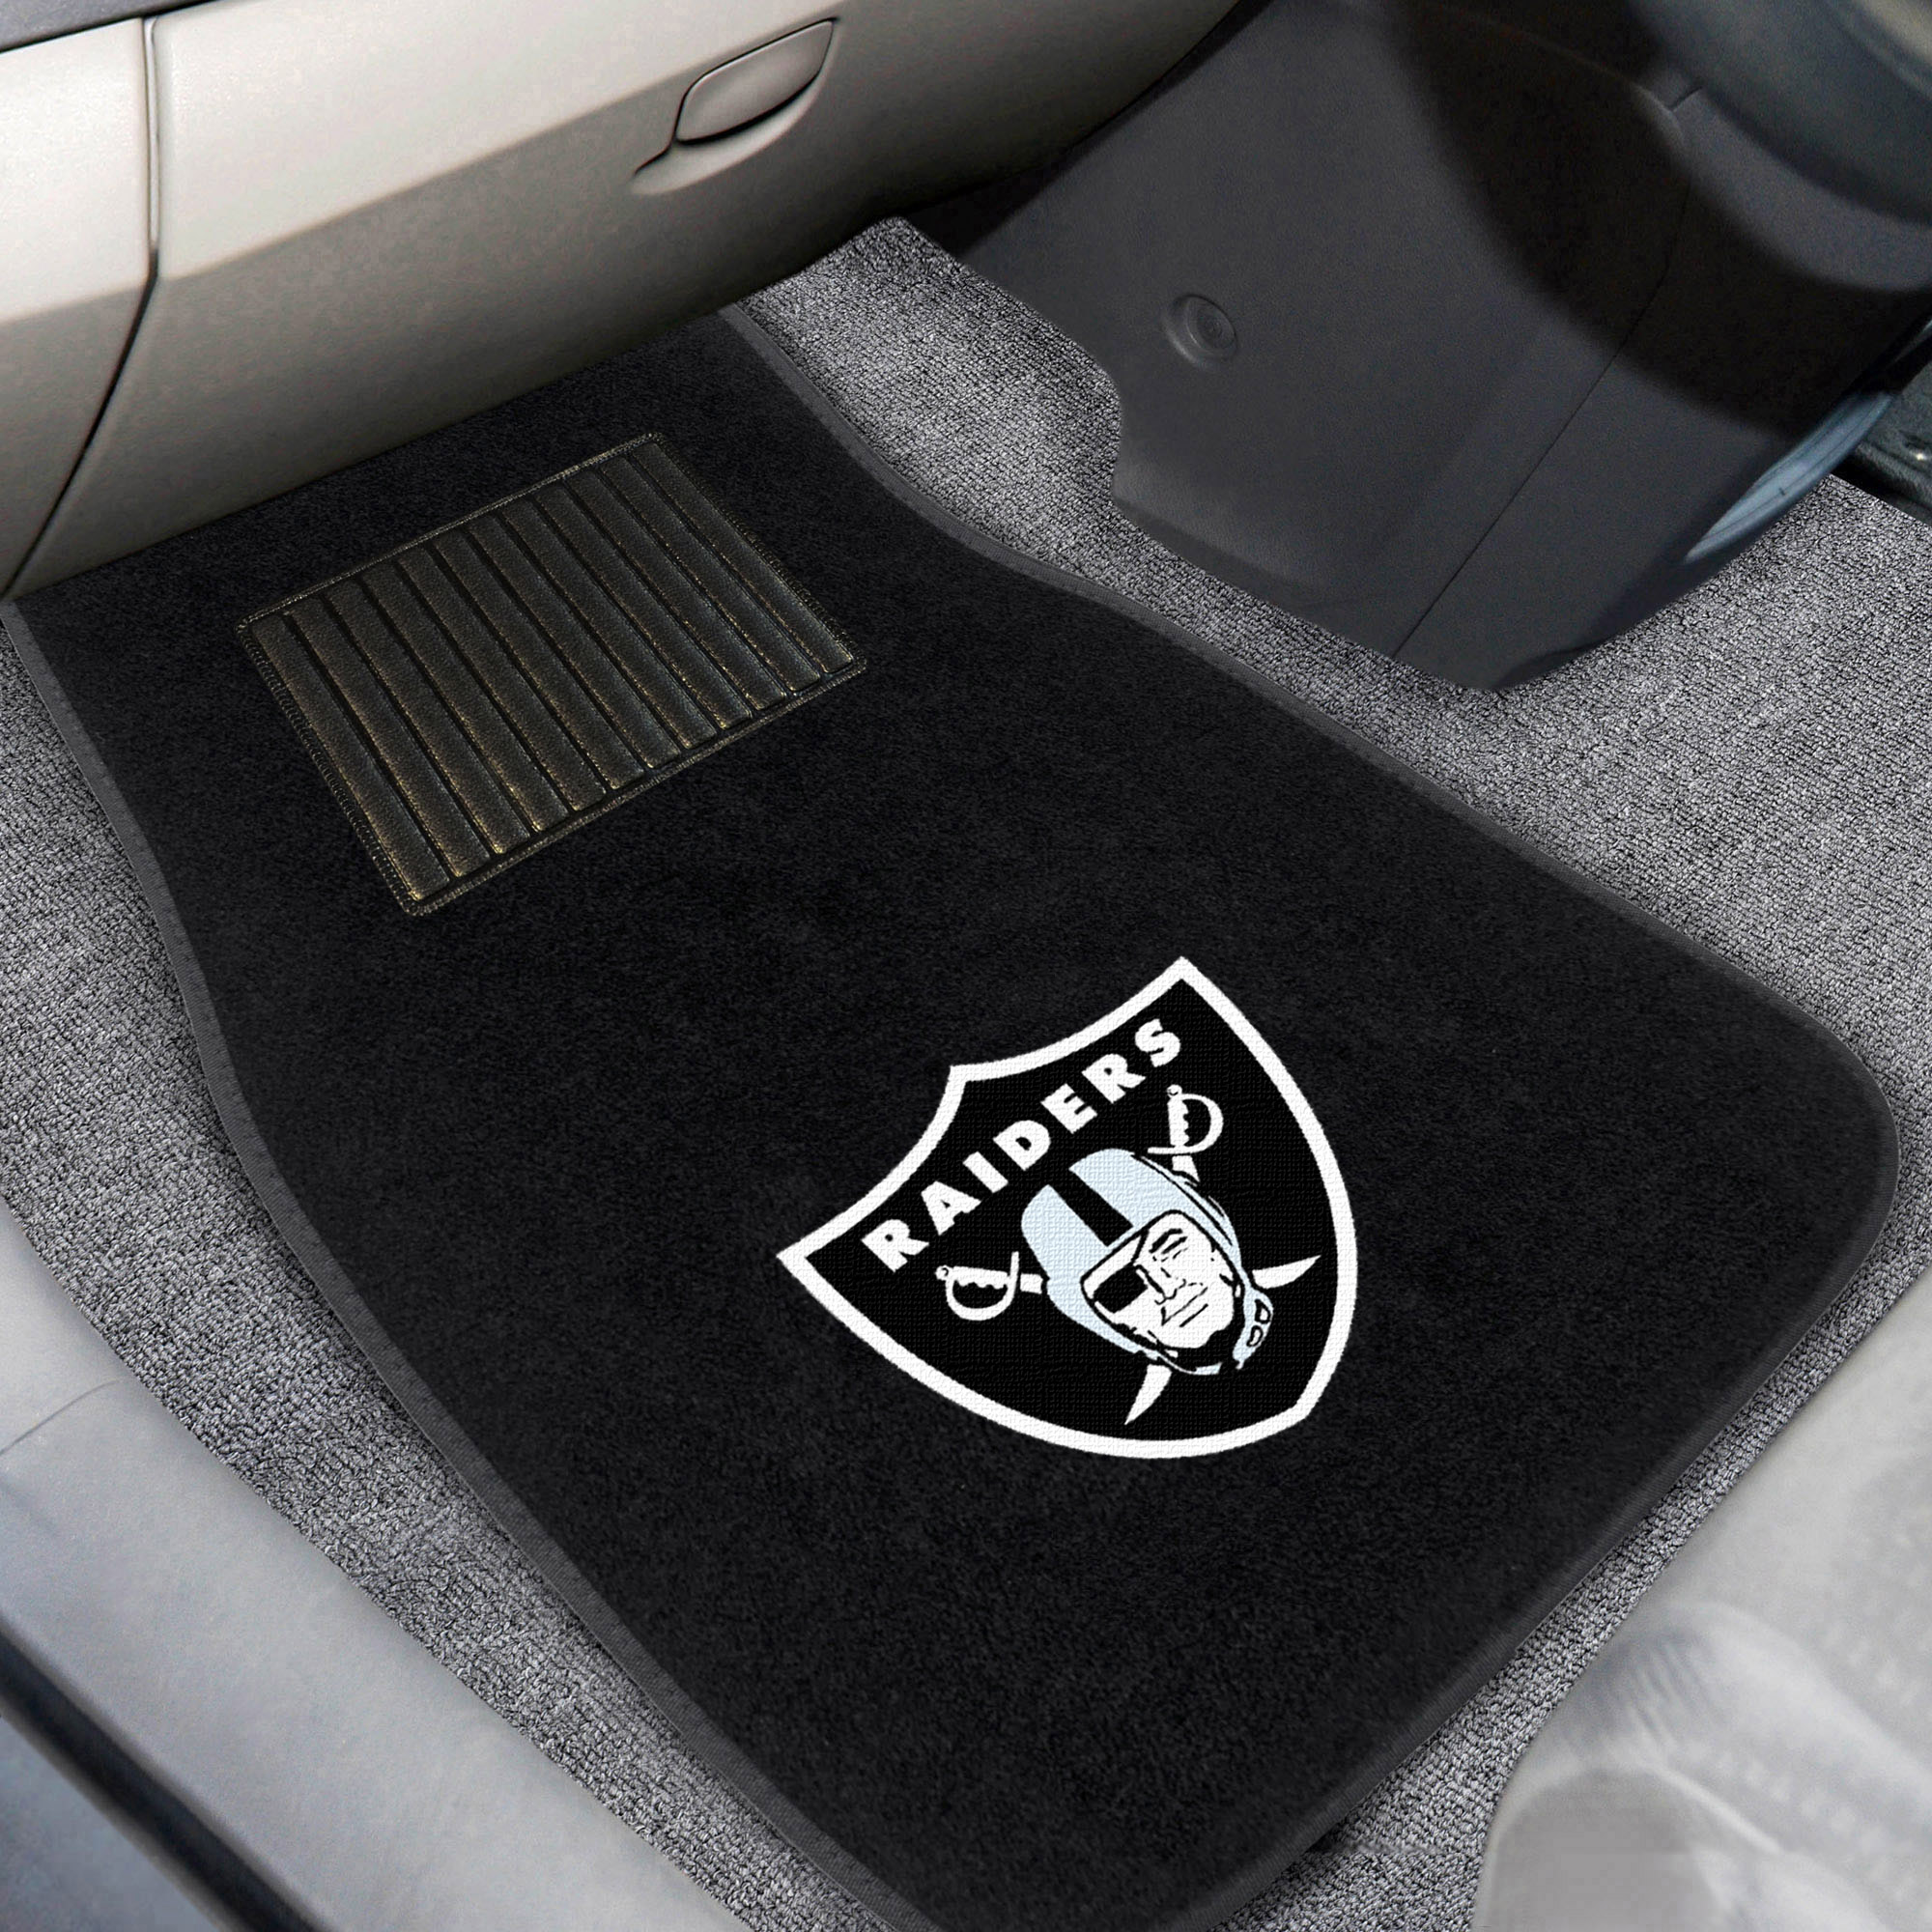 Oakland Raiders 2-Piece Embroidered Car Mat Set - No Size